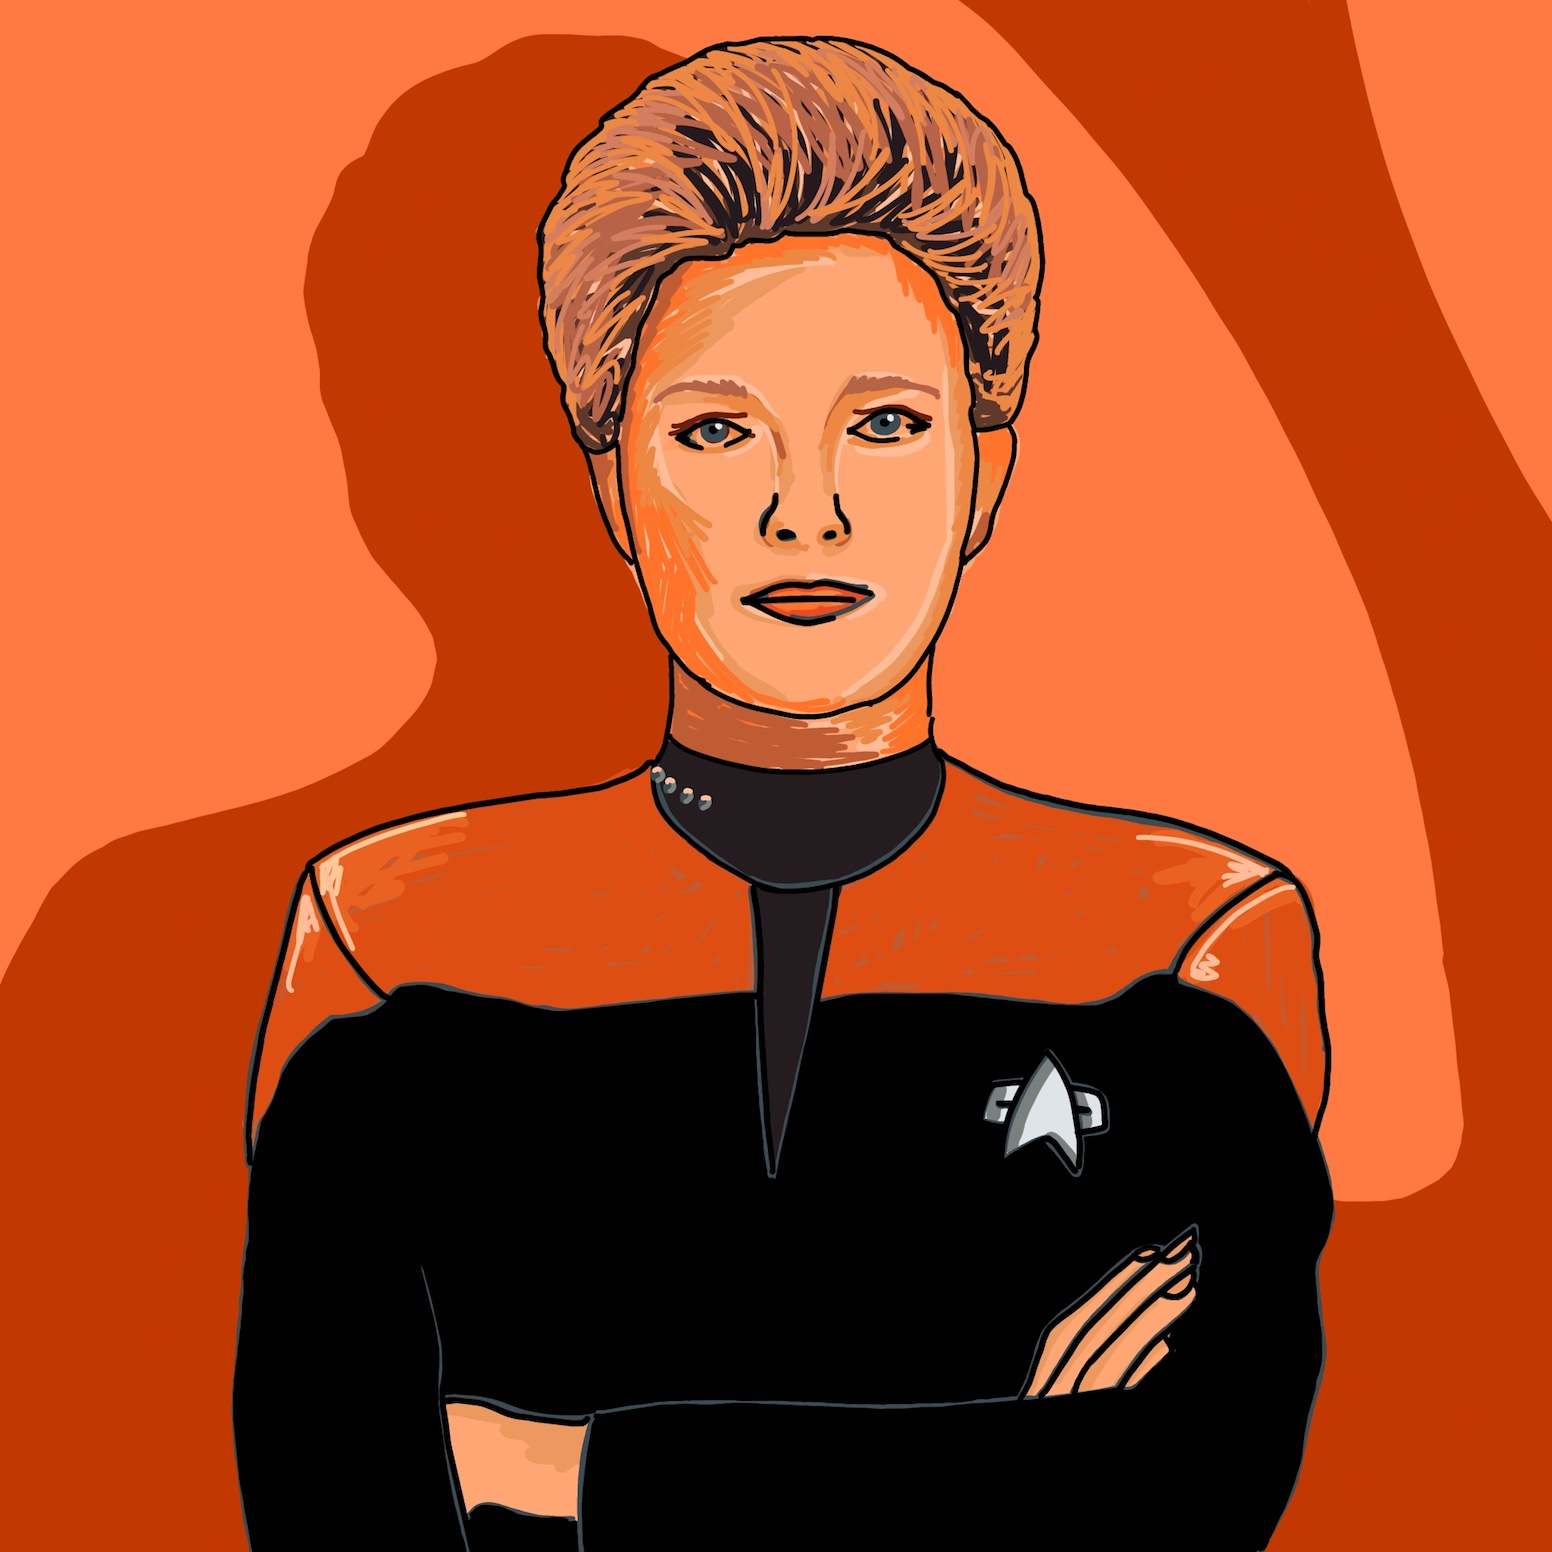 Kathryn Janeway ⁣ I was brought up on Star Trek, as Dad's always been a fan, so naturally it was on telly a fair bit growing up. Voyager was always my favourite though, as I just loved Kathryn Janeway. Her character was such an inspiring leader, and I think in more recent years (having re-watched it all a couple of years ago), I've come to realise that she's actually had a pretty profound impact on how I feel leadership should be. ⁣ ⁣ She commands her ship with such diligence and care, navigating them through unknown, often treacherous territories, with the sole aim of getting them home. She's thoughtful, kind, innovative, and respectful of her crew. She takes risks, which sometimes don't pan out, but ultimately she always has the wellbeing of her crew at the core of all of the decisions she makes. She learns from her mistakes, moving forward to the next challenge, never wavering in her hope that they would find their way back (which, *spoiler alert*, they do)  🖖 ~ Jess